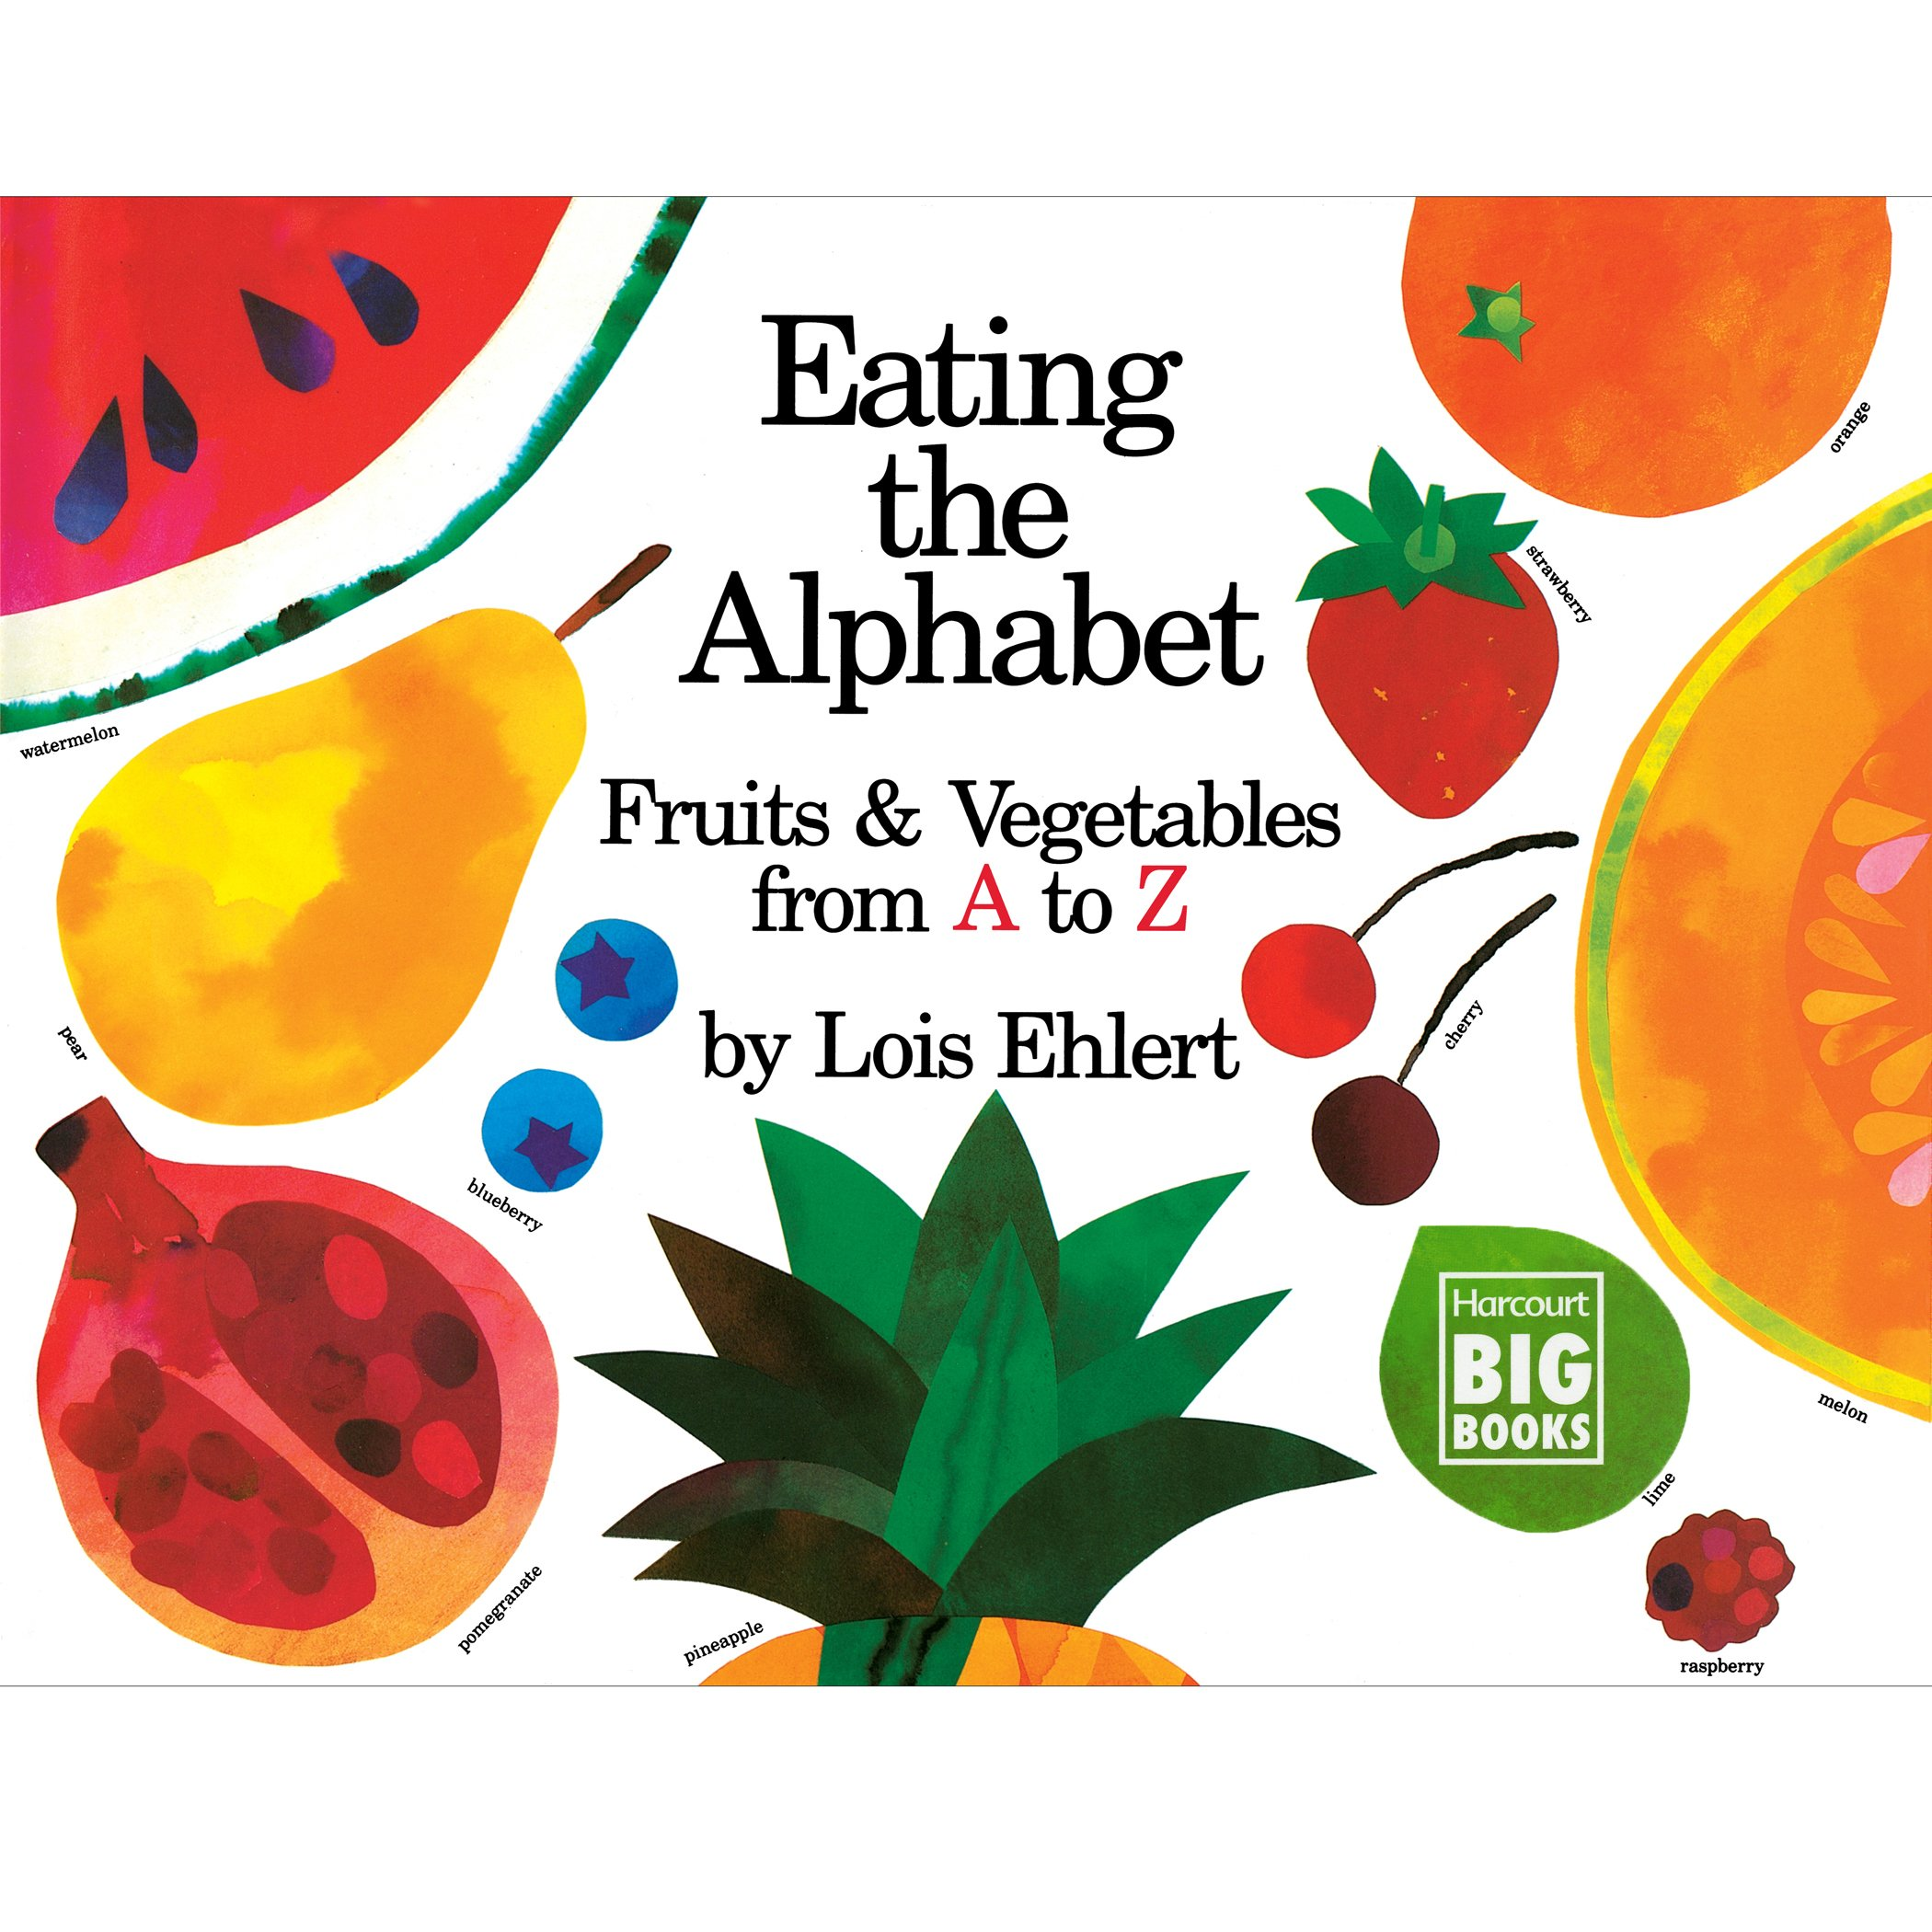 Eating the Alphabet: Fruits & Vegetables from A to Z (Harcourt Brace Big Book) by Turtleback